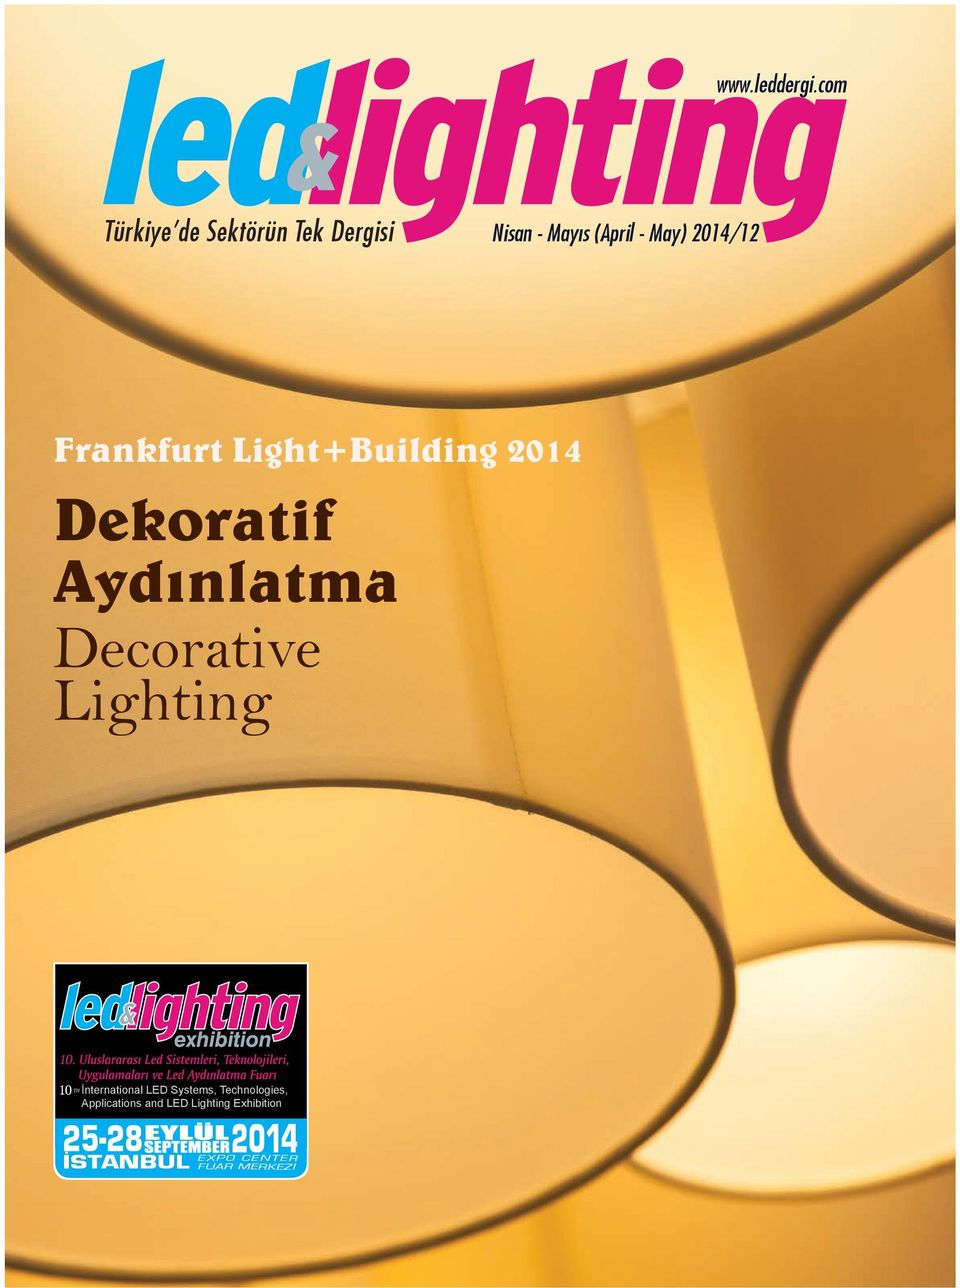 Frankfurt Light+Building 2014 Dekoratif Aydınlatma Decorative Lighting